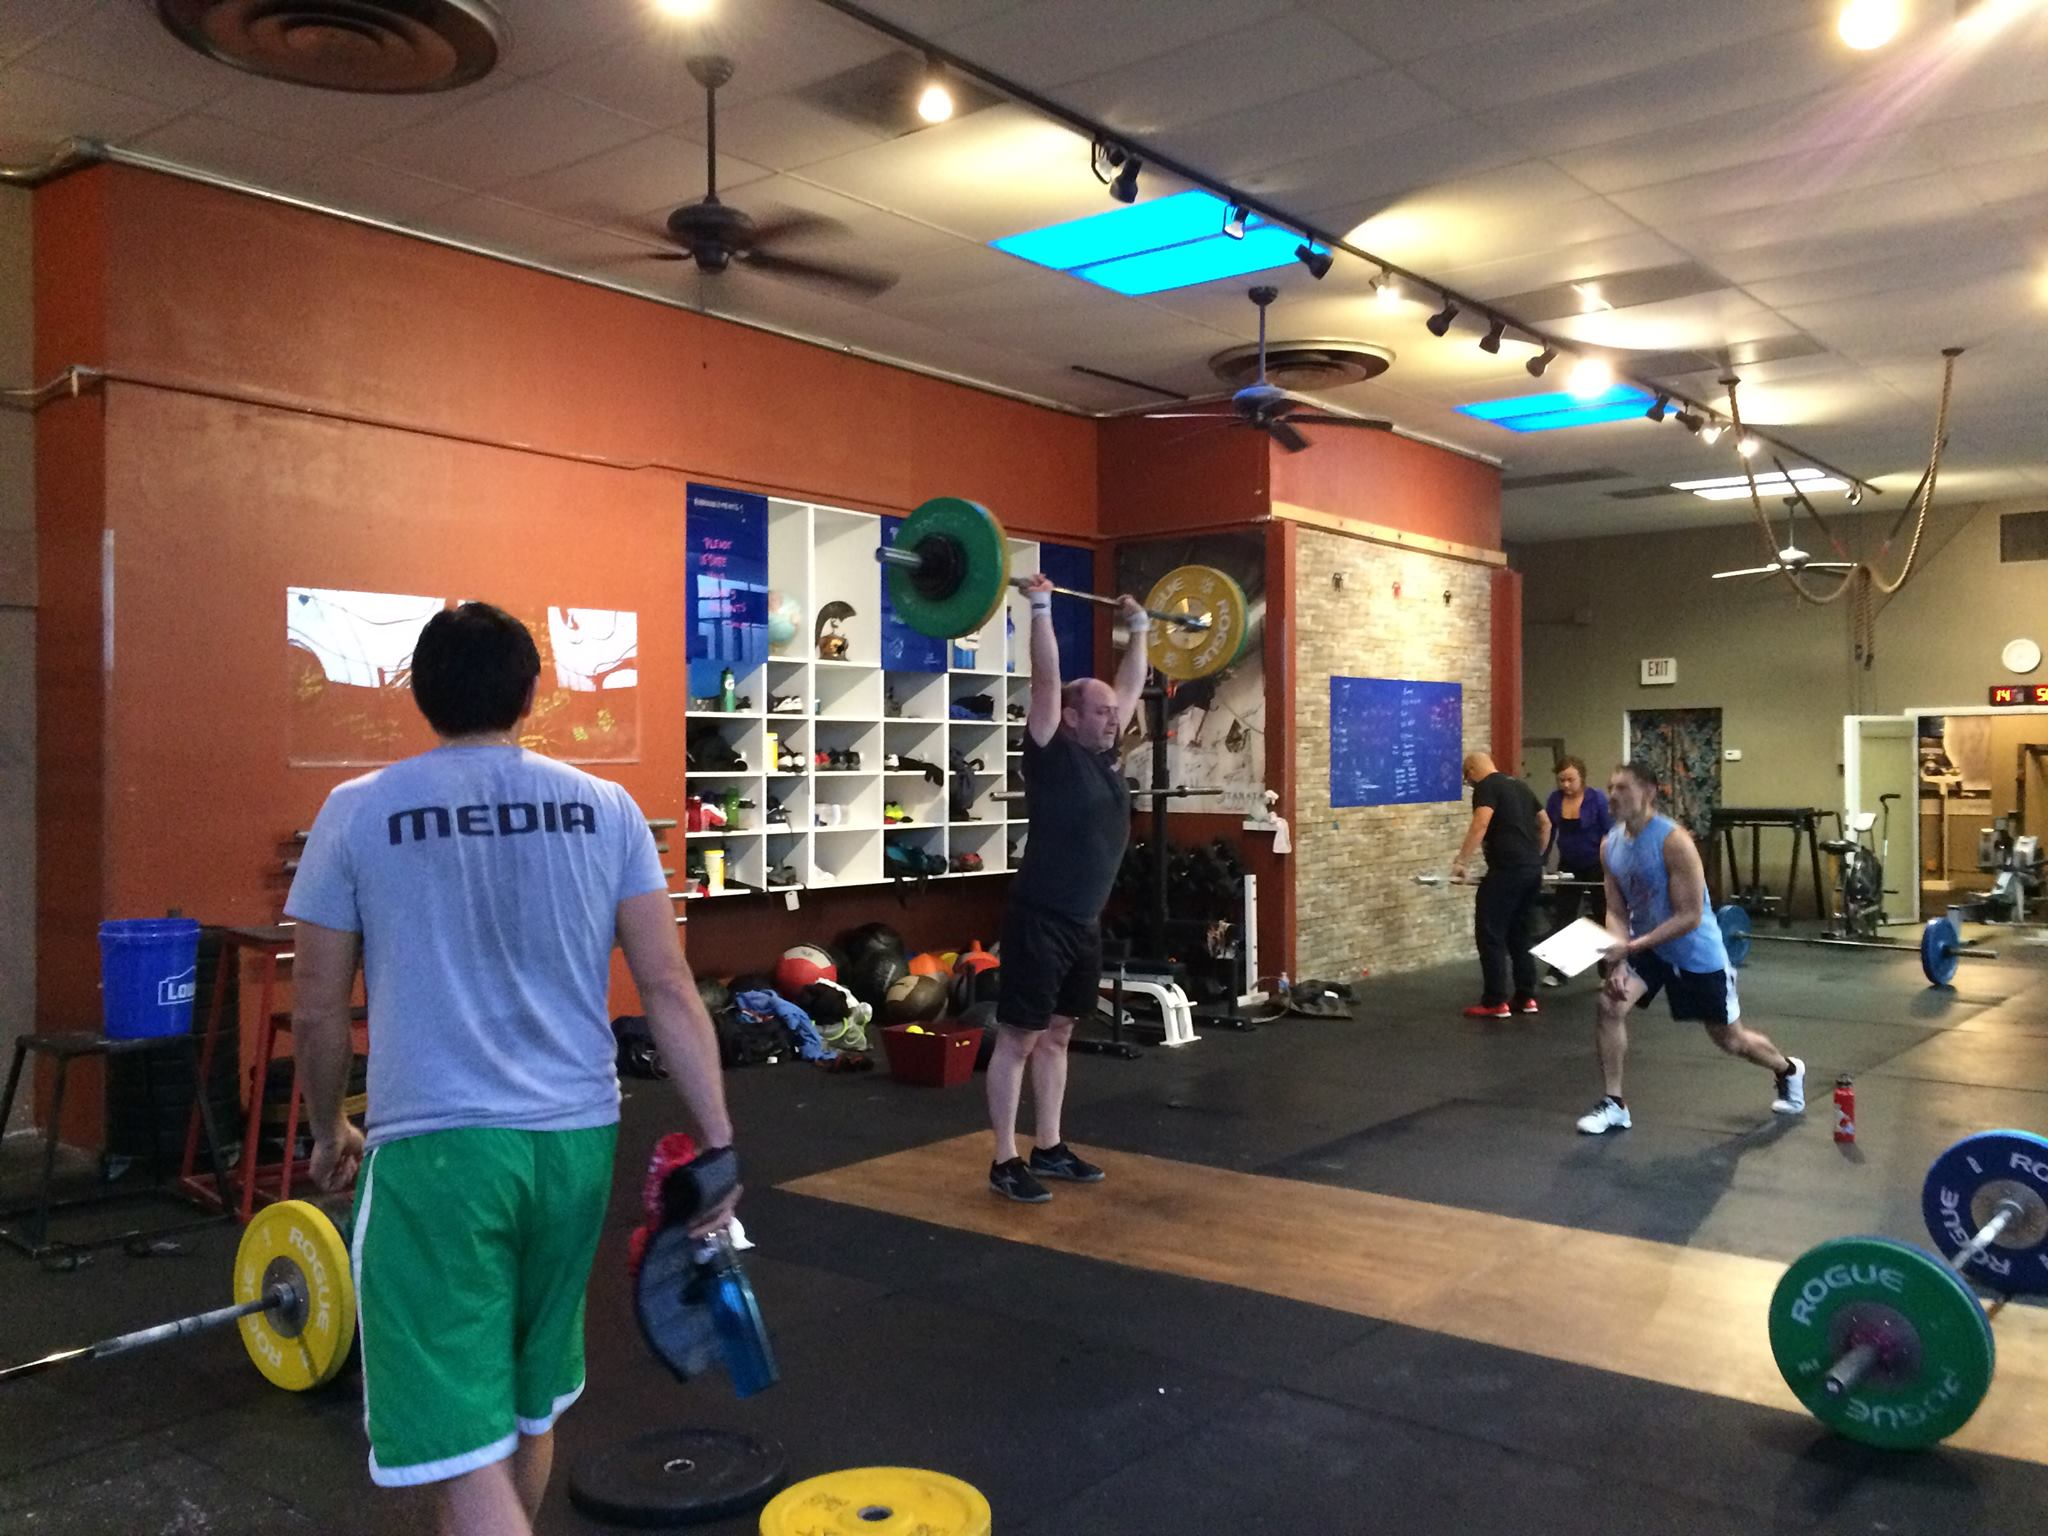 15.1 going down at CFSV.The SV Breakfast Club cleanand jerks at the crack of dawn. Thank you for judging, helping and cheering each other on. The Open brings us closer together again!